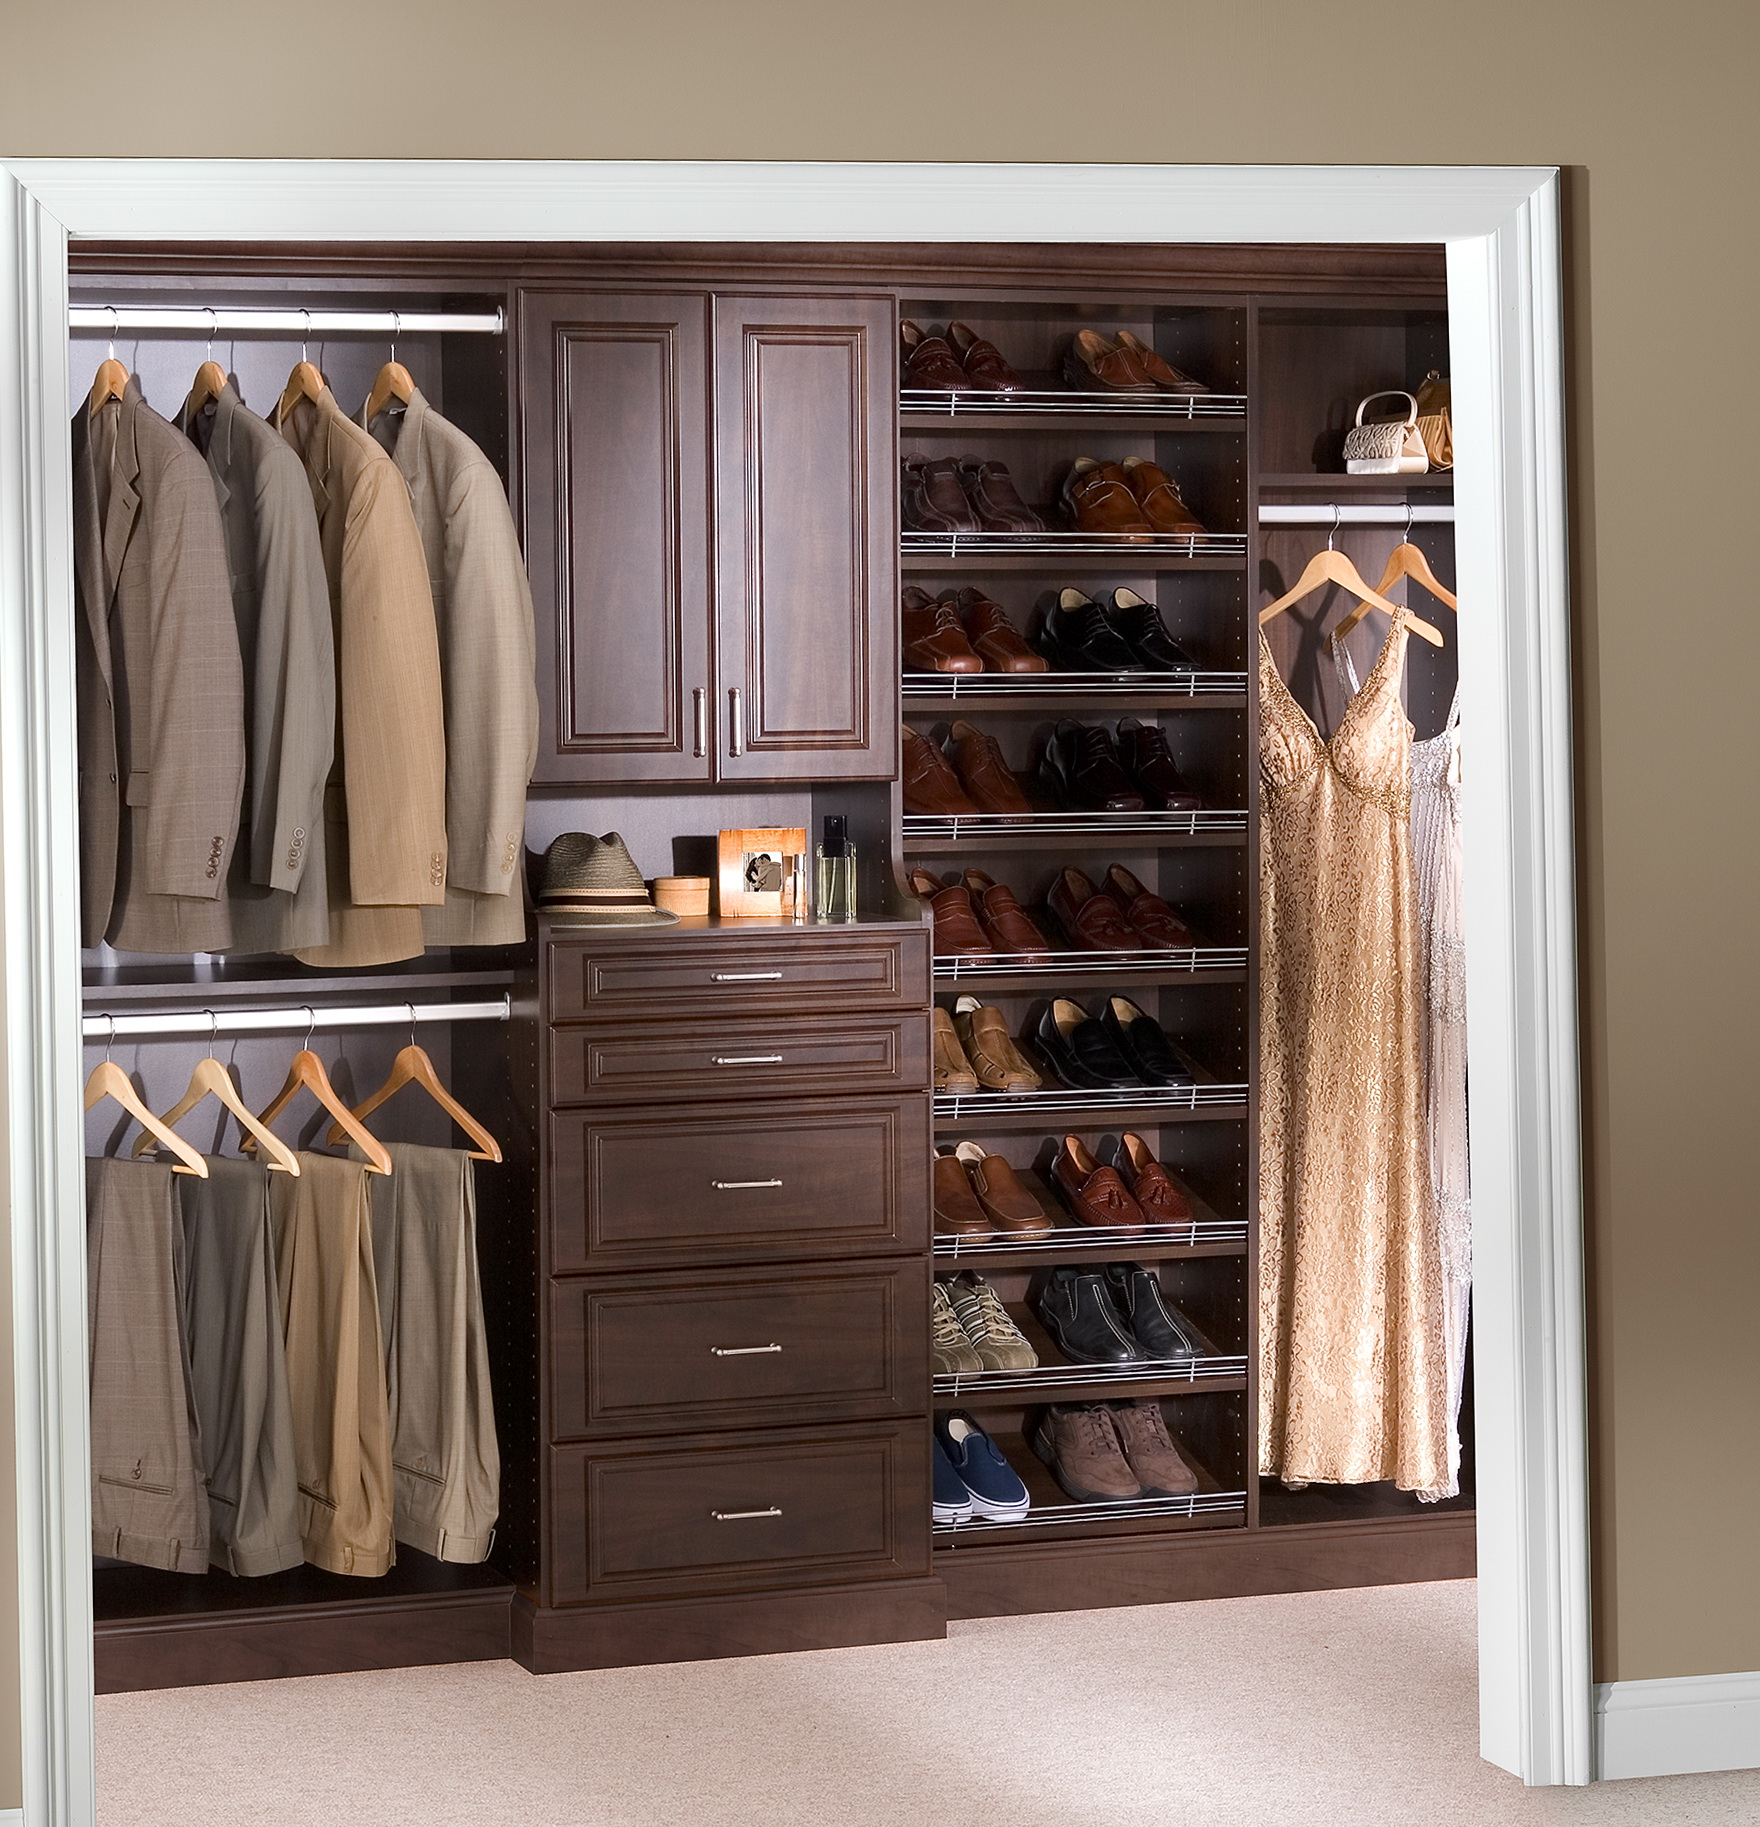 Small closet storage solutions home design ideas for Storage solutions for small closets